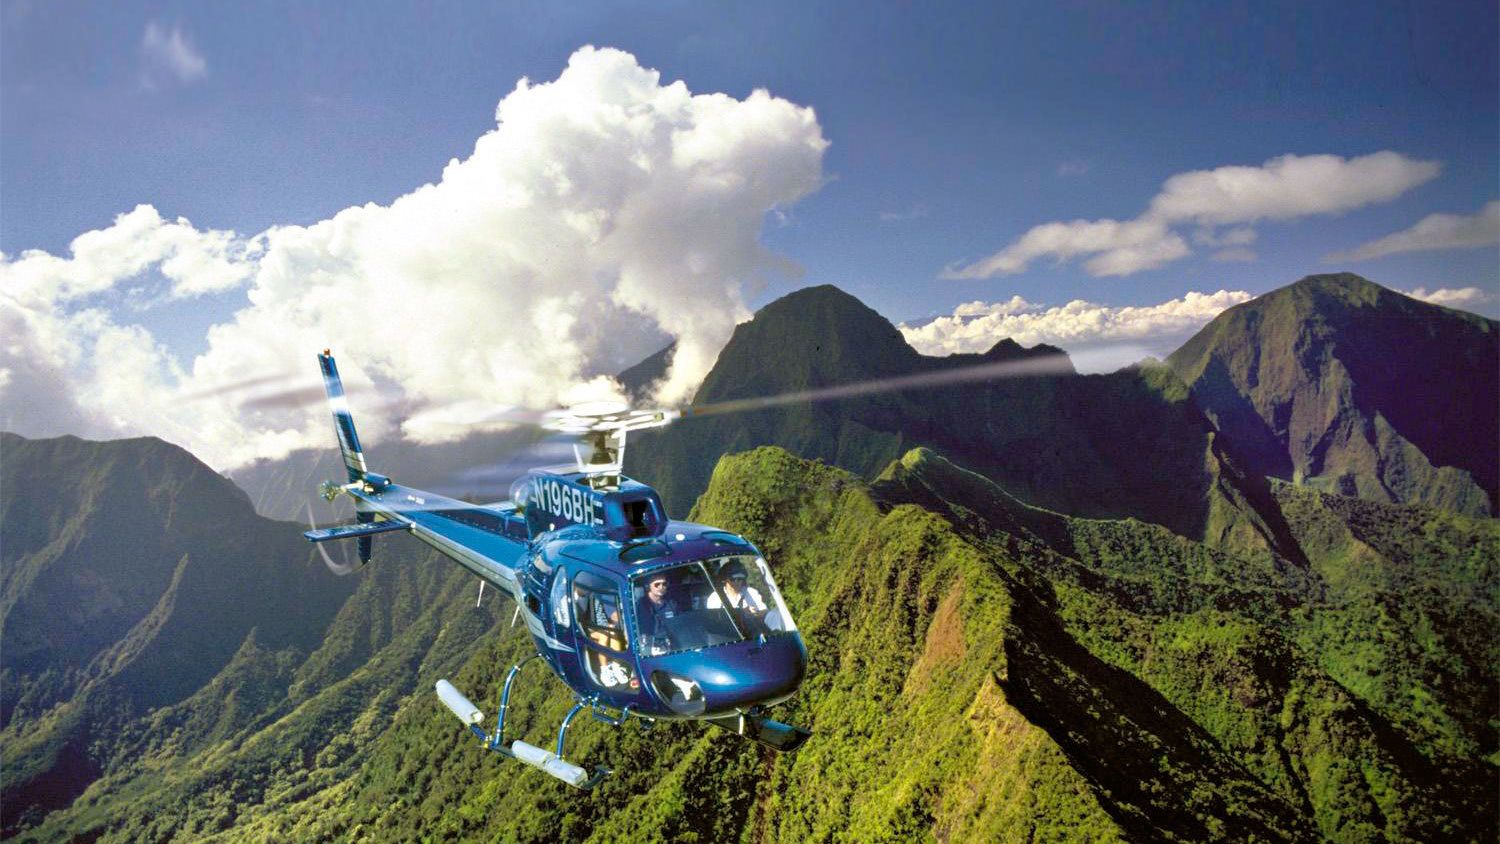 Green mountain peeks on the Waterfalls & Molokai Seacliffs Helicopter Tour in Maui